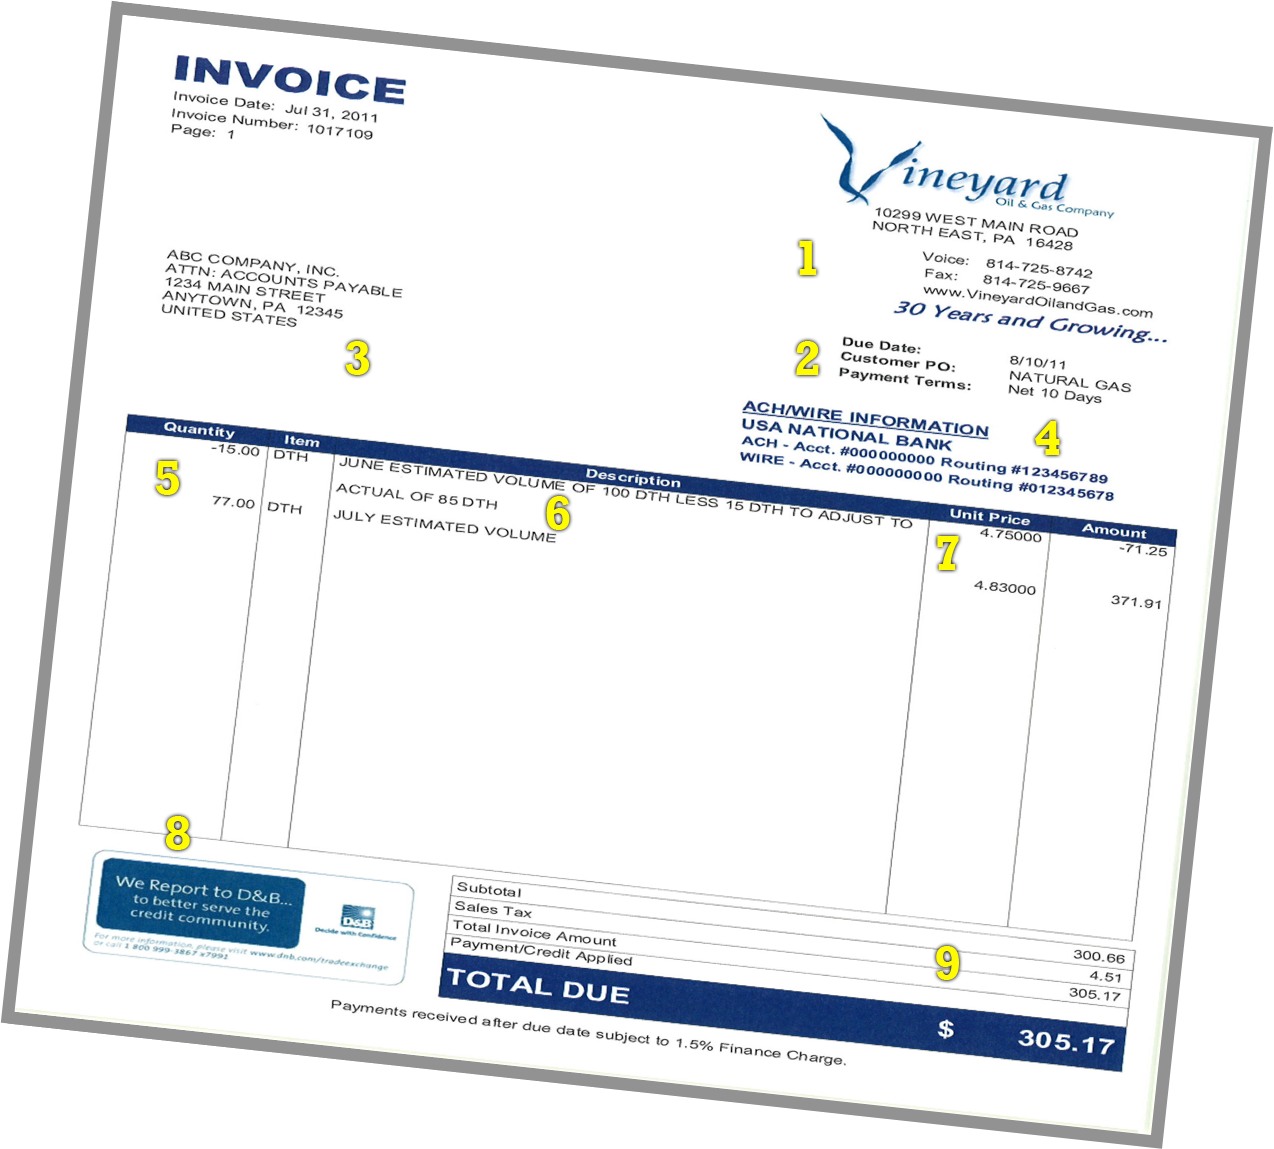 Sample VOG Invoice